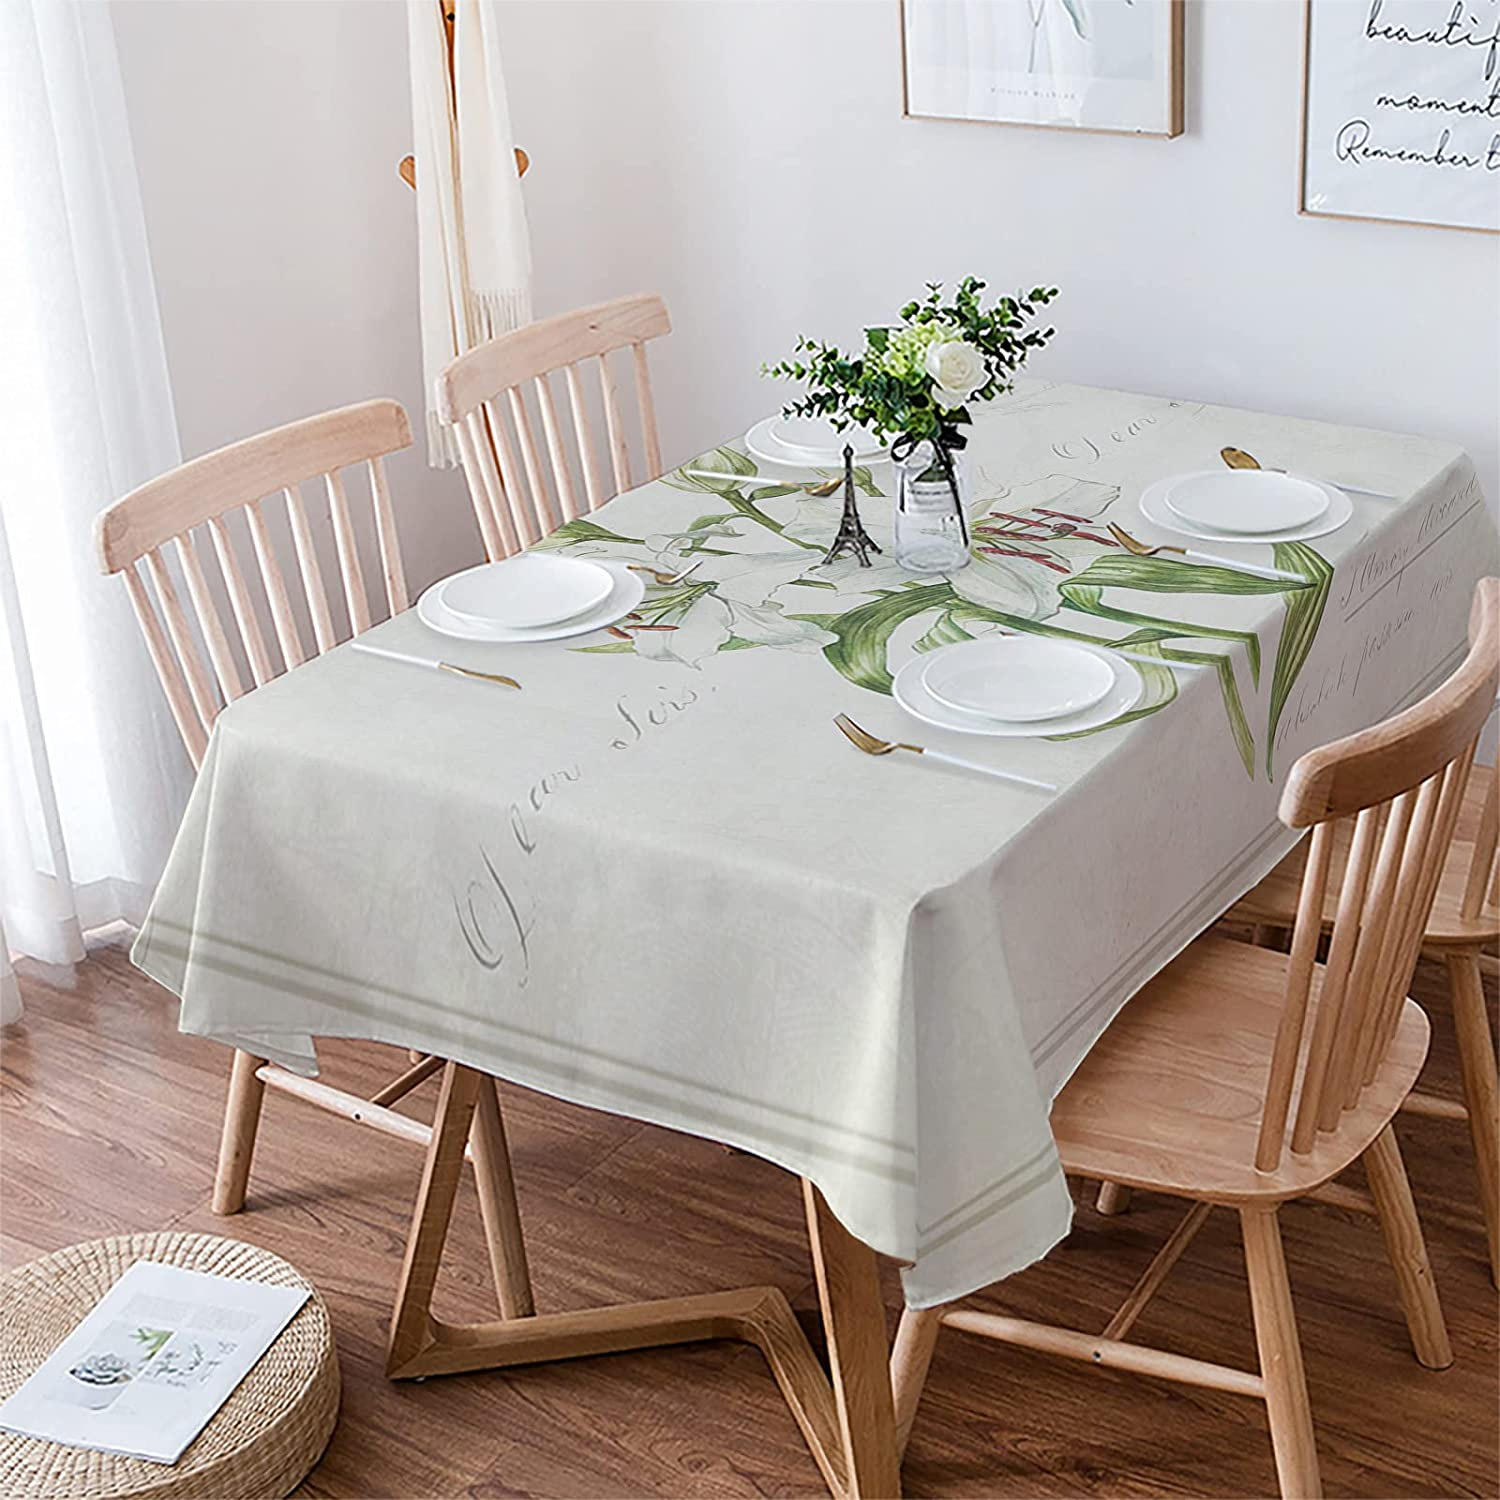 LBDEKOR Table Cloth Washington Mall Wrinkle Rapid rise Free Cover Rectangle 54 Dining